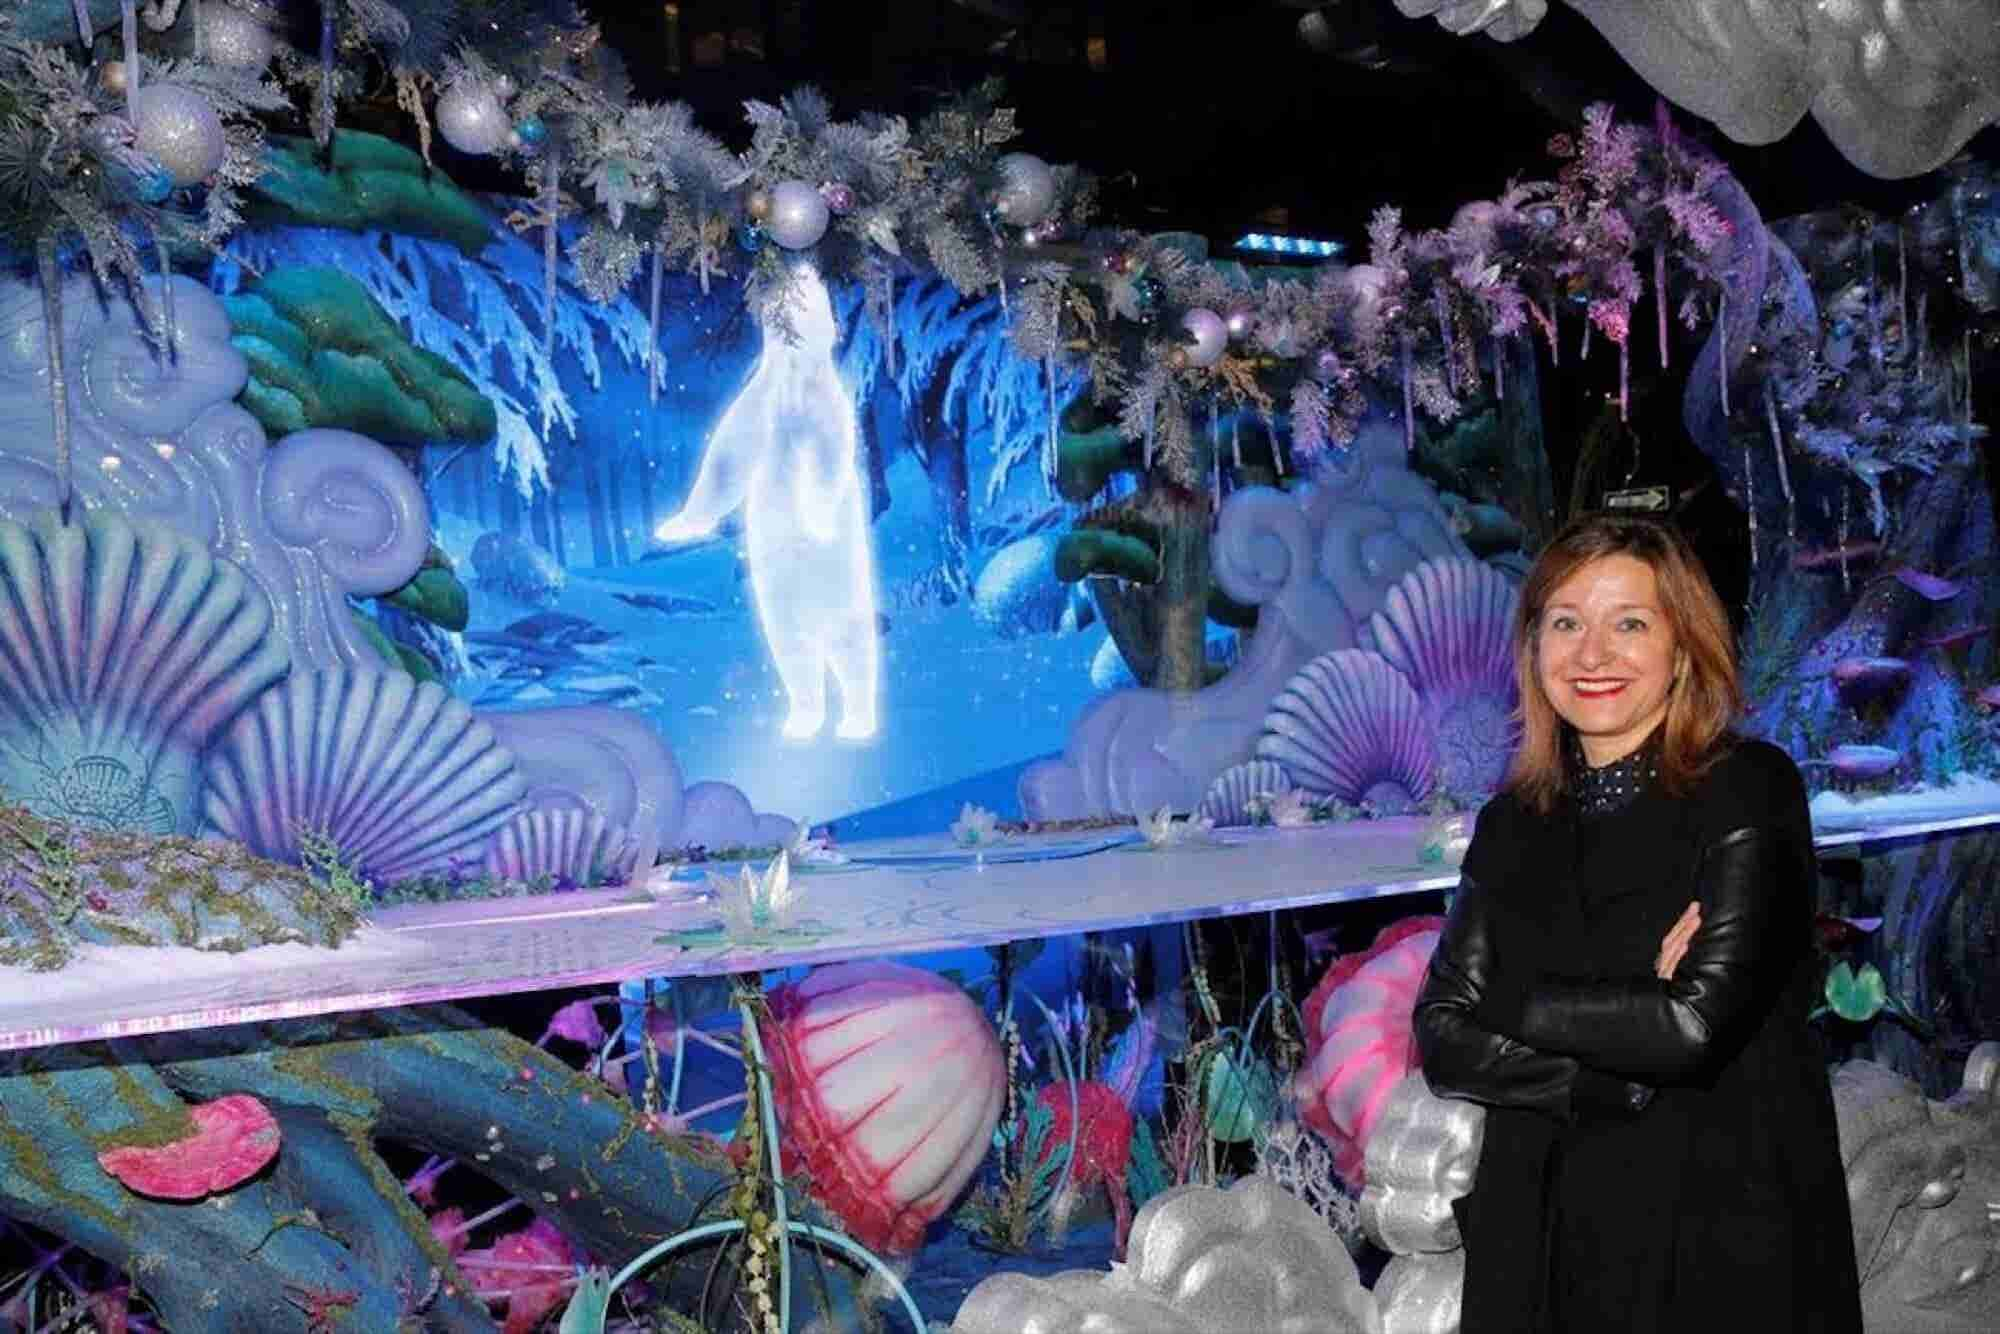 Macy's Holiday Window Designer Shares 3 Secrets for Better Holiday Displays